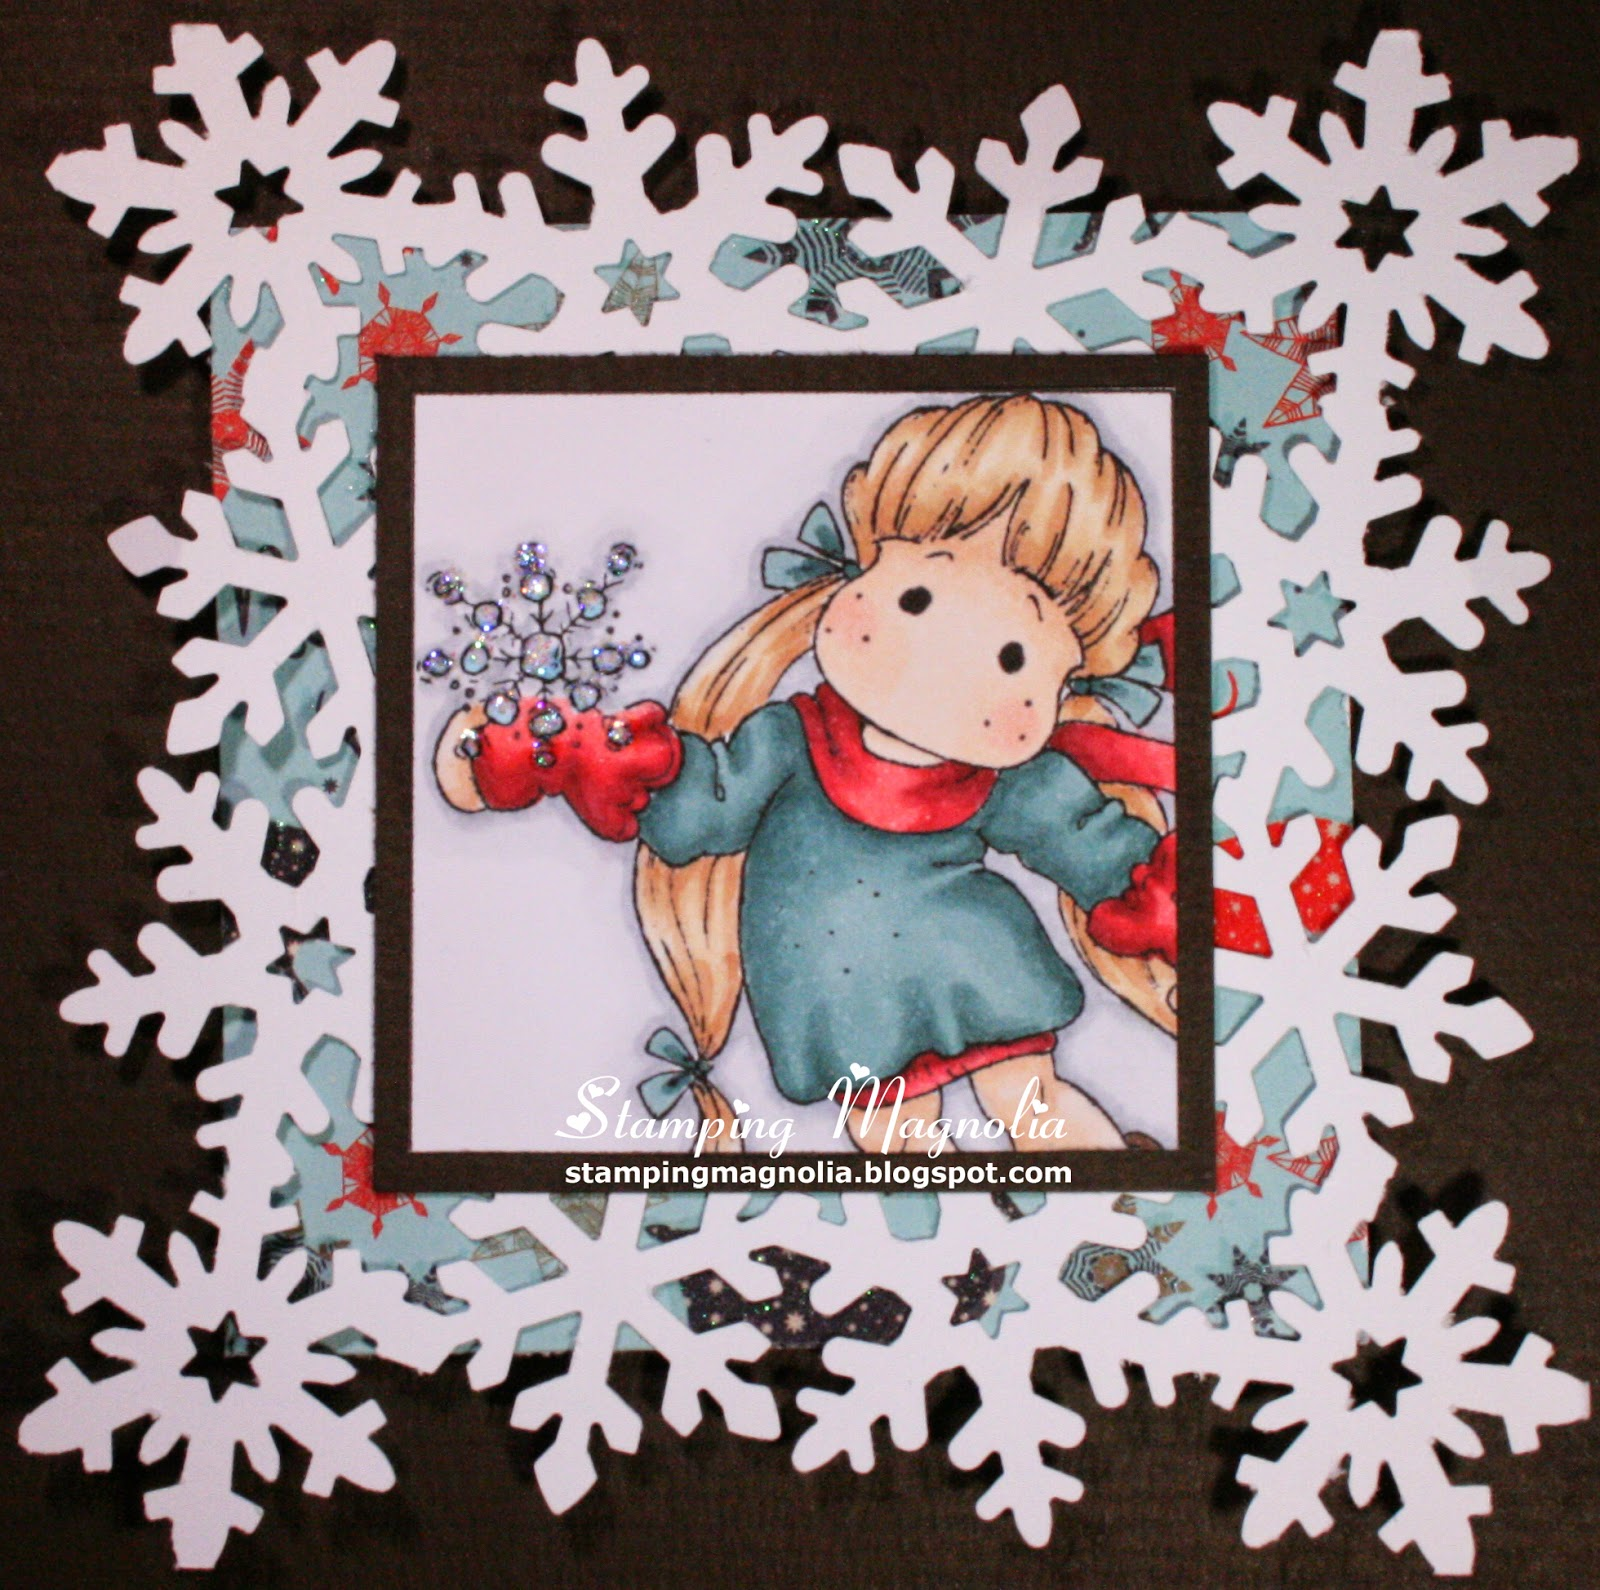 Coloring Magnolia Stamp A Christmas Story Collection - Snowy Tilda